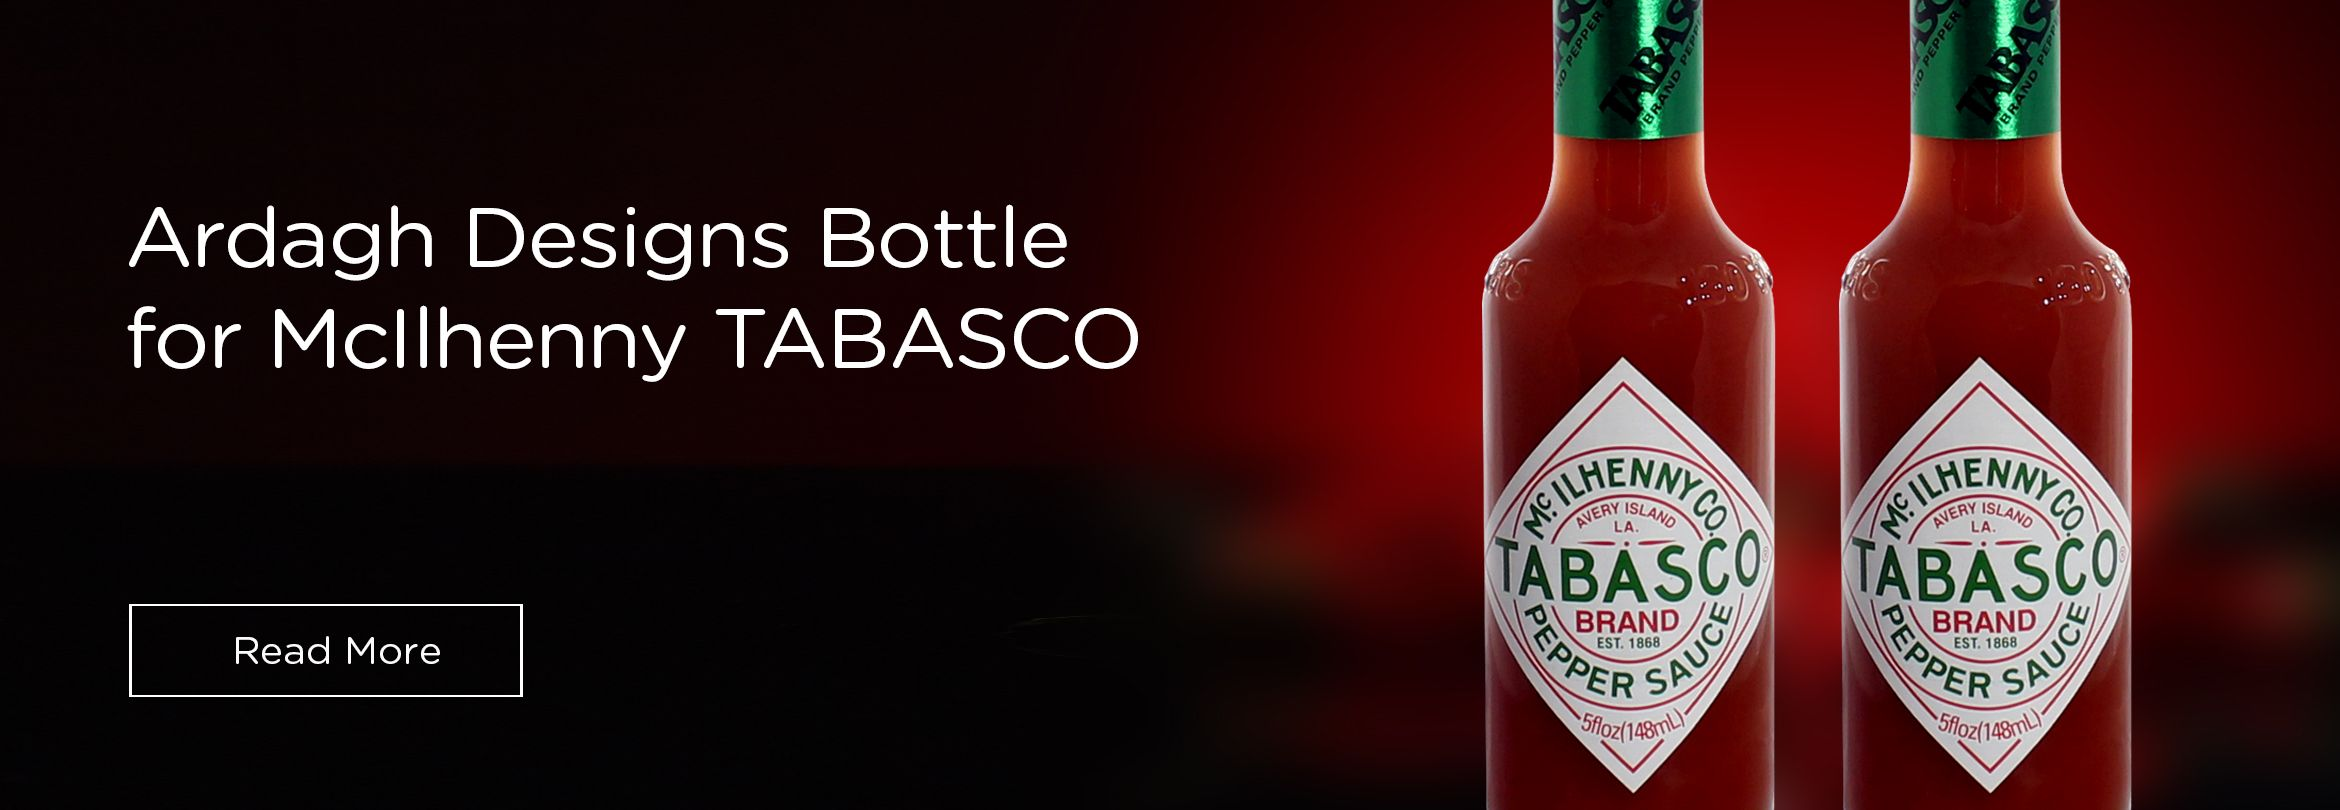 McIlhenny Company's TABASCO® Sauce Celebrates 150 Years with Commemorative Anniversary Bottle